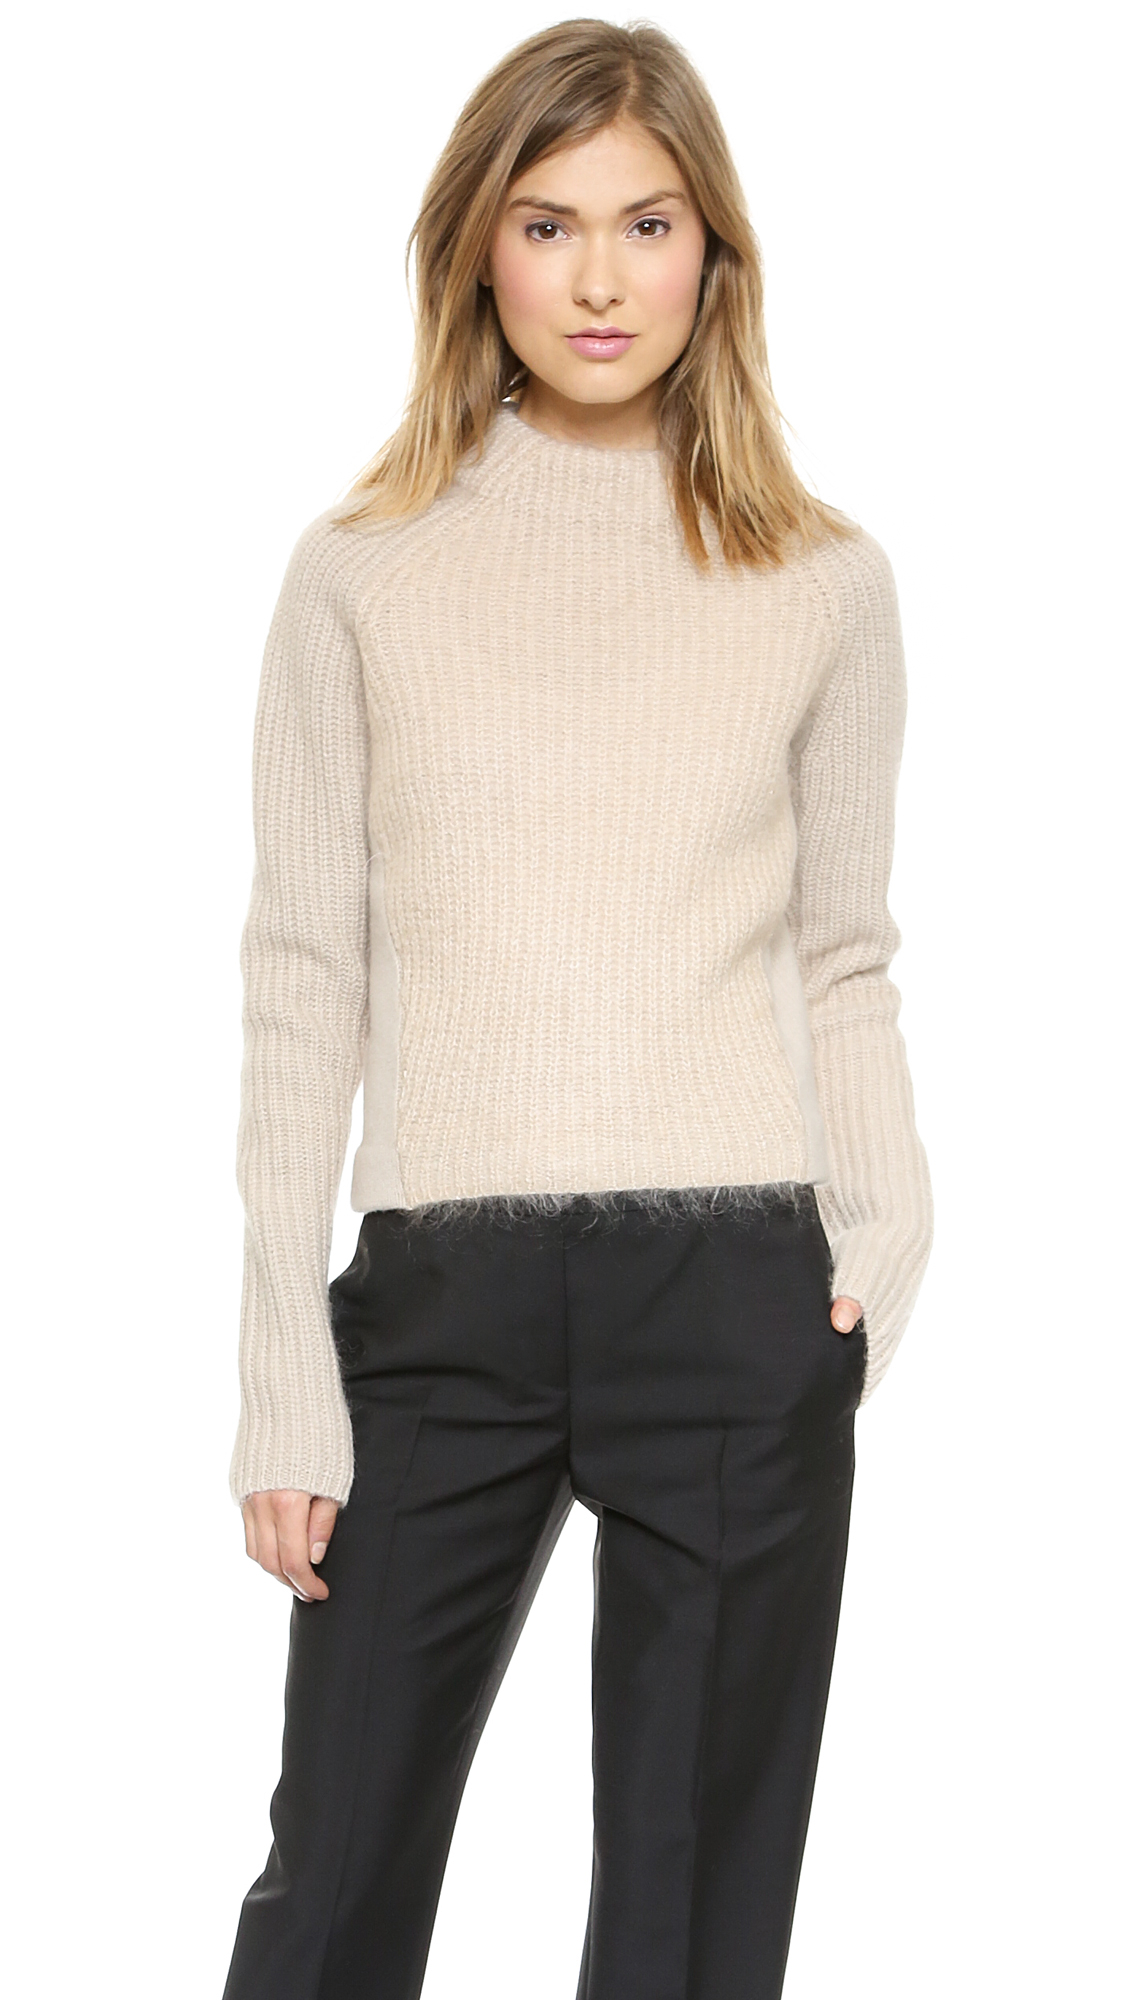 acne studios loyal mixed knit sweater beige in natural lyst. Black Bedroom Furniture Sets. Home Design Ideas